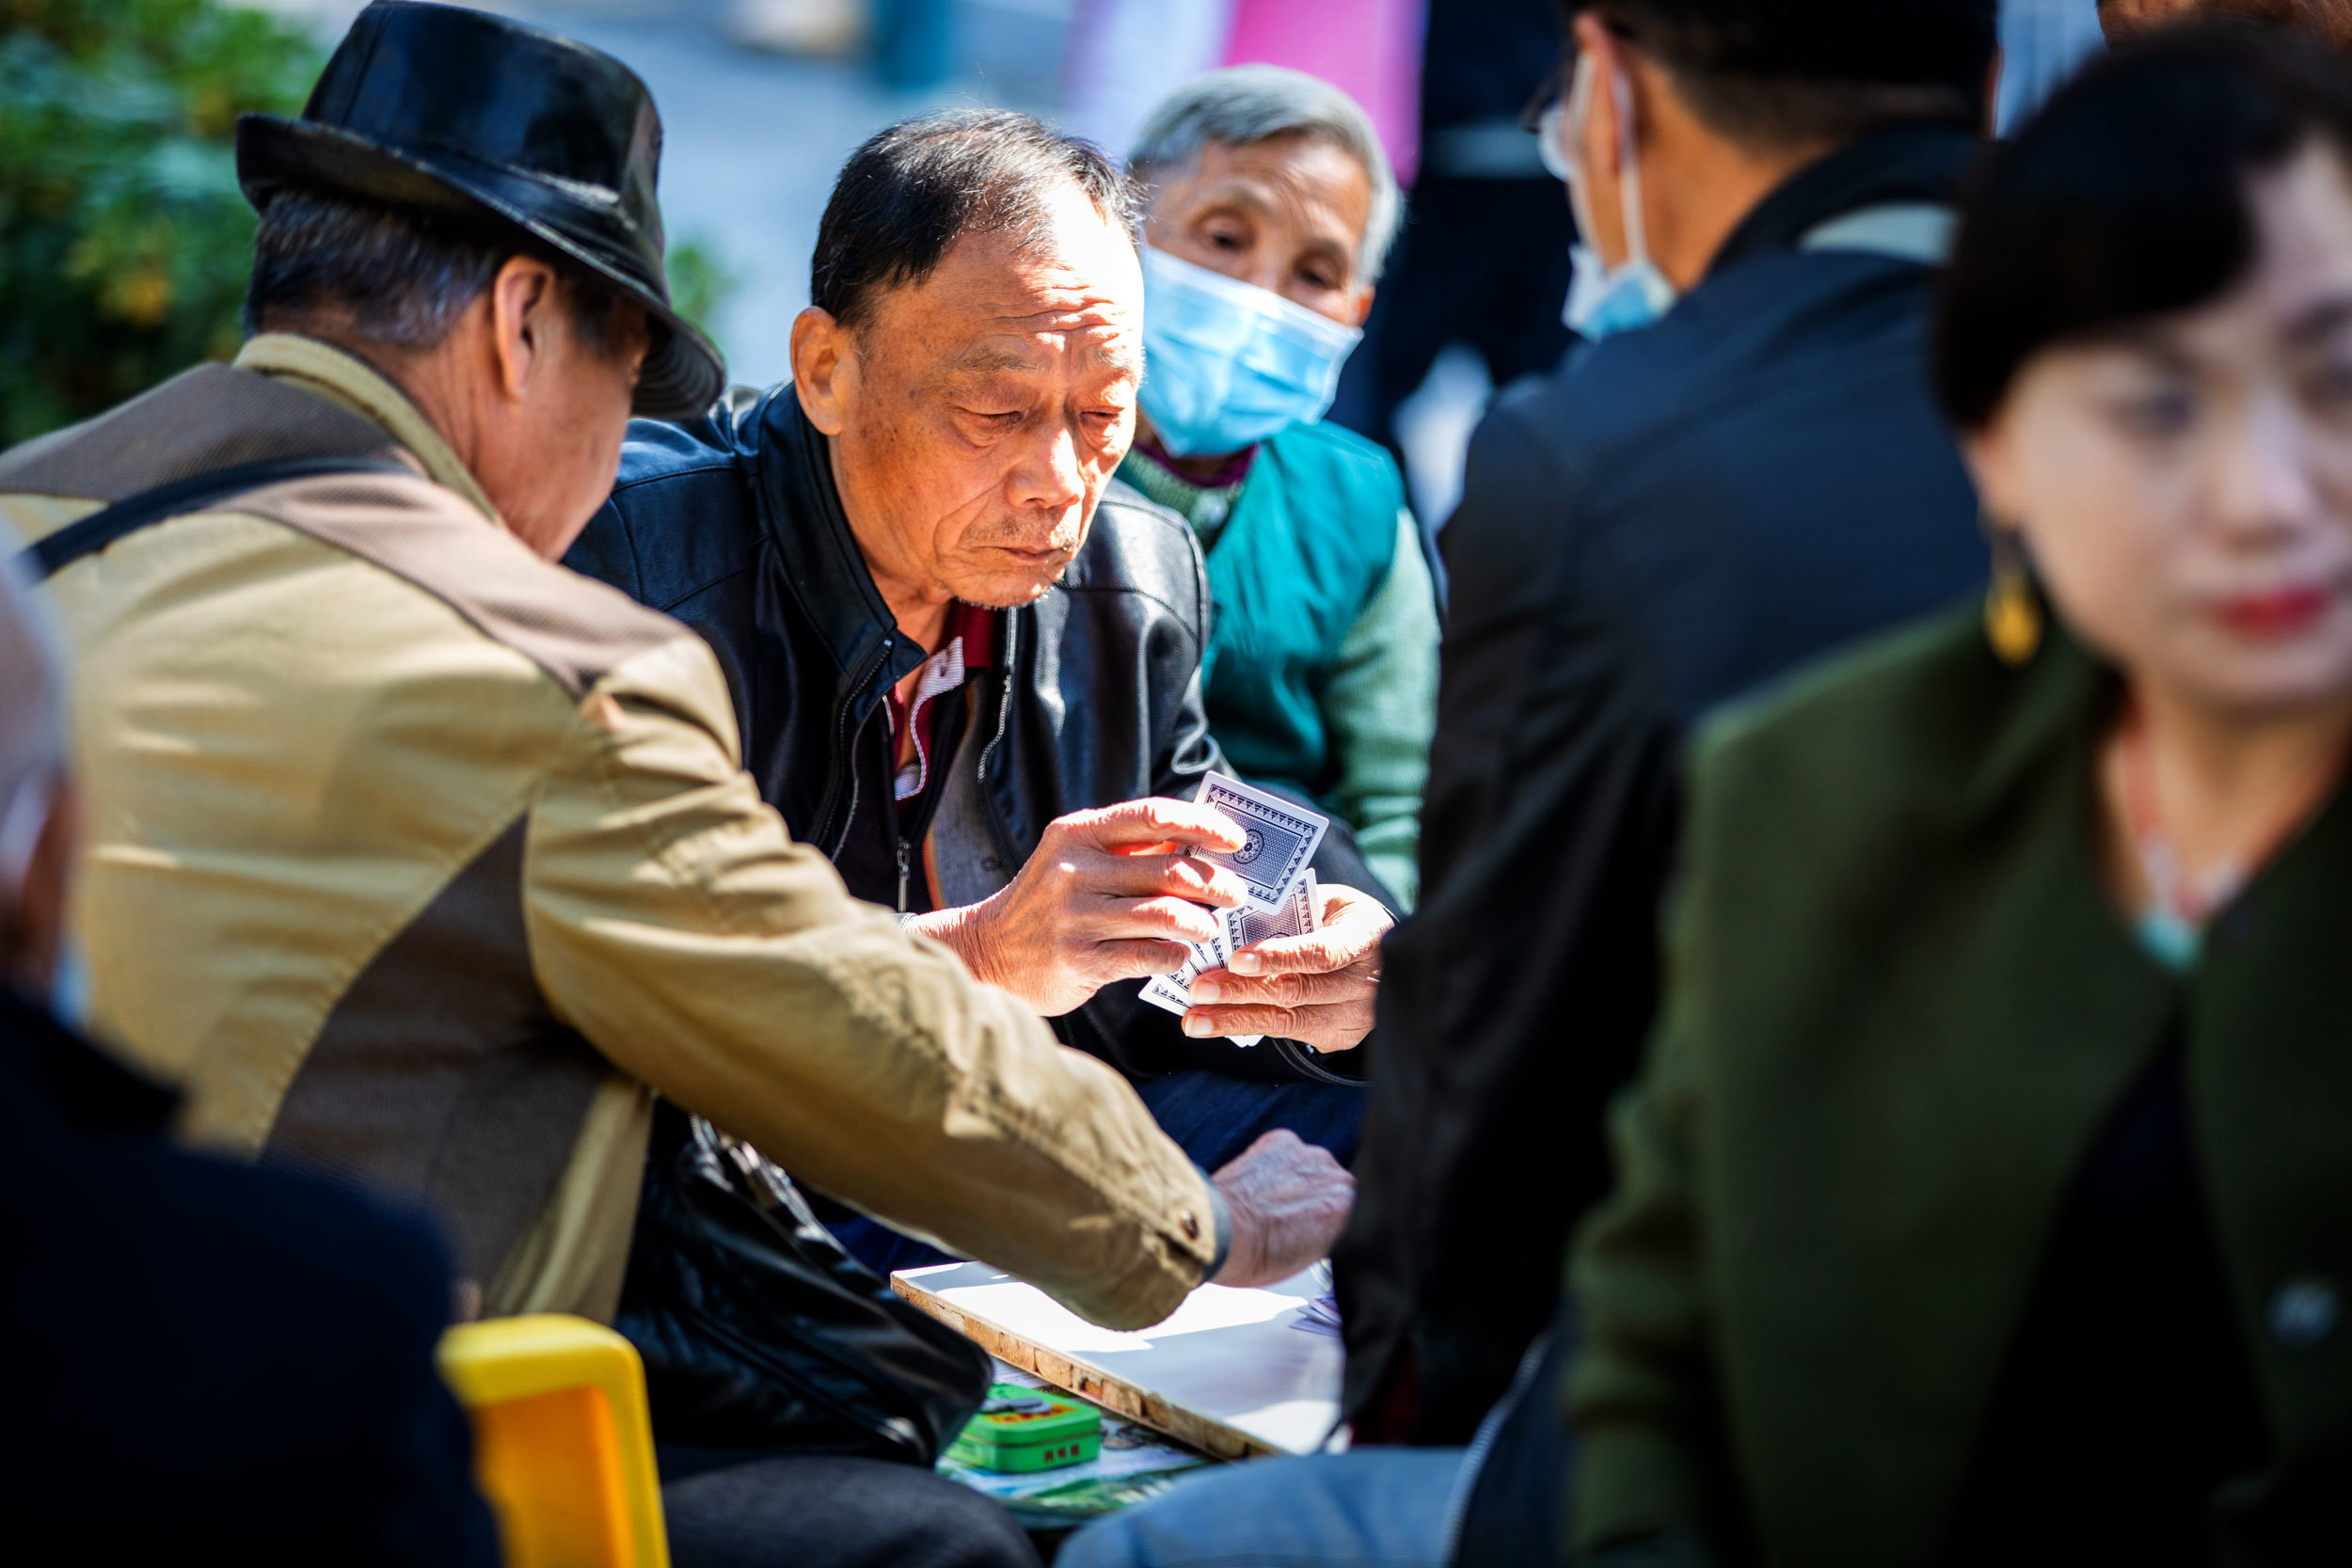 Daily life has returned to Wuhan's parks and squares, where COVID-19 seems forgotten and even masks rarely interfere with a game of cards. (Saša Petricic/CBC)